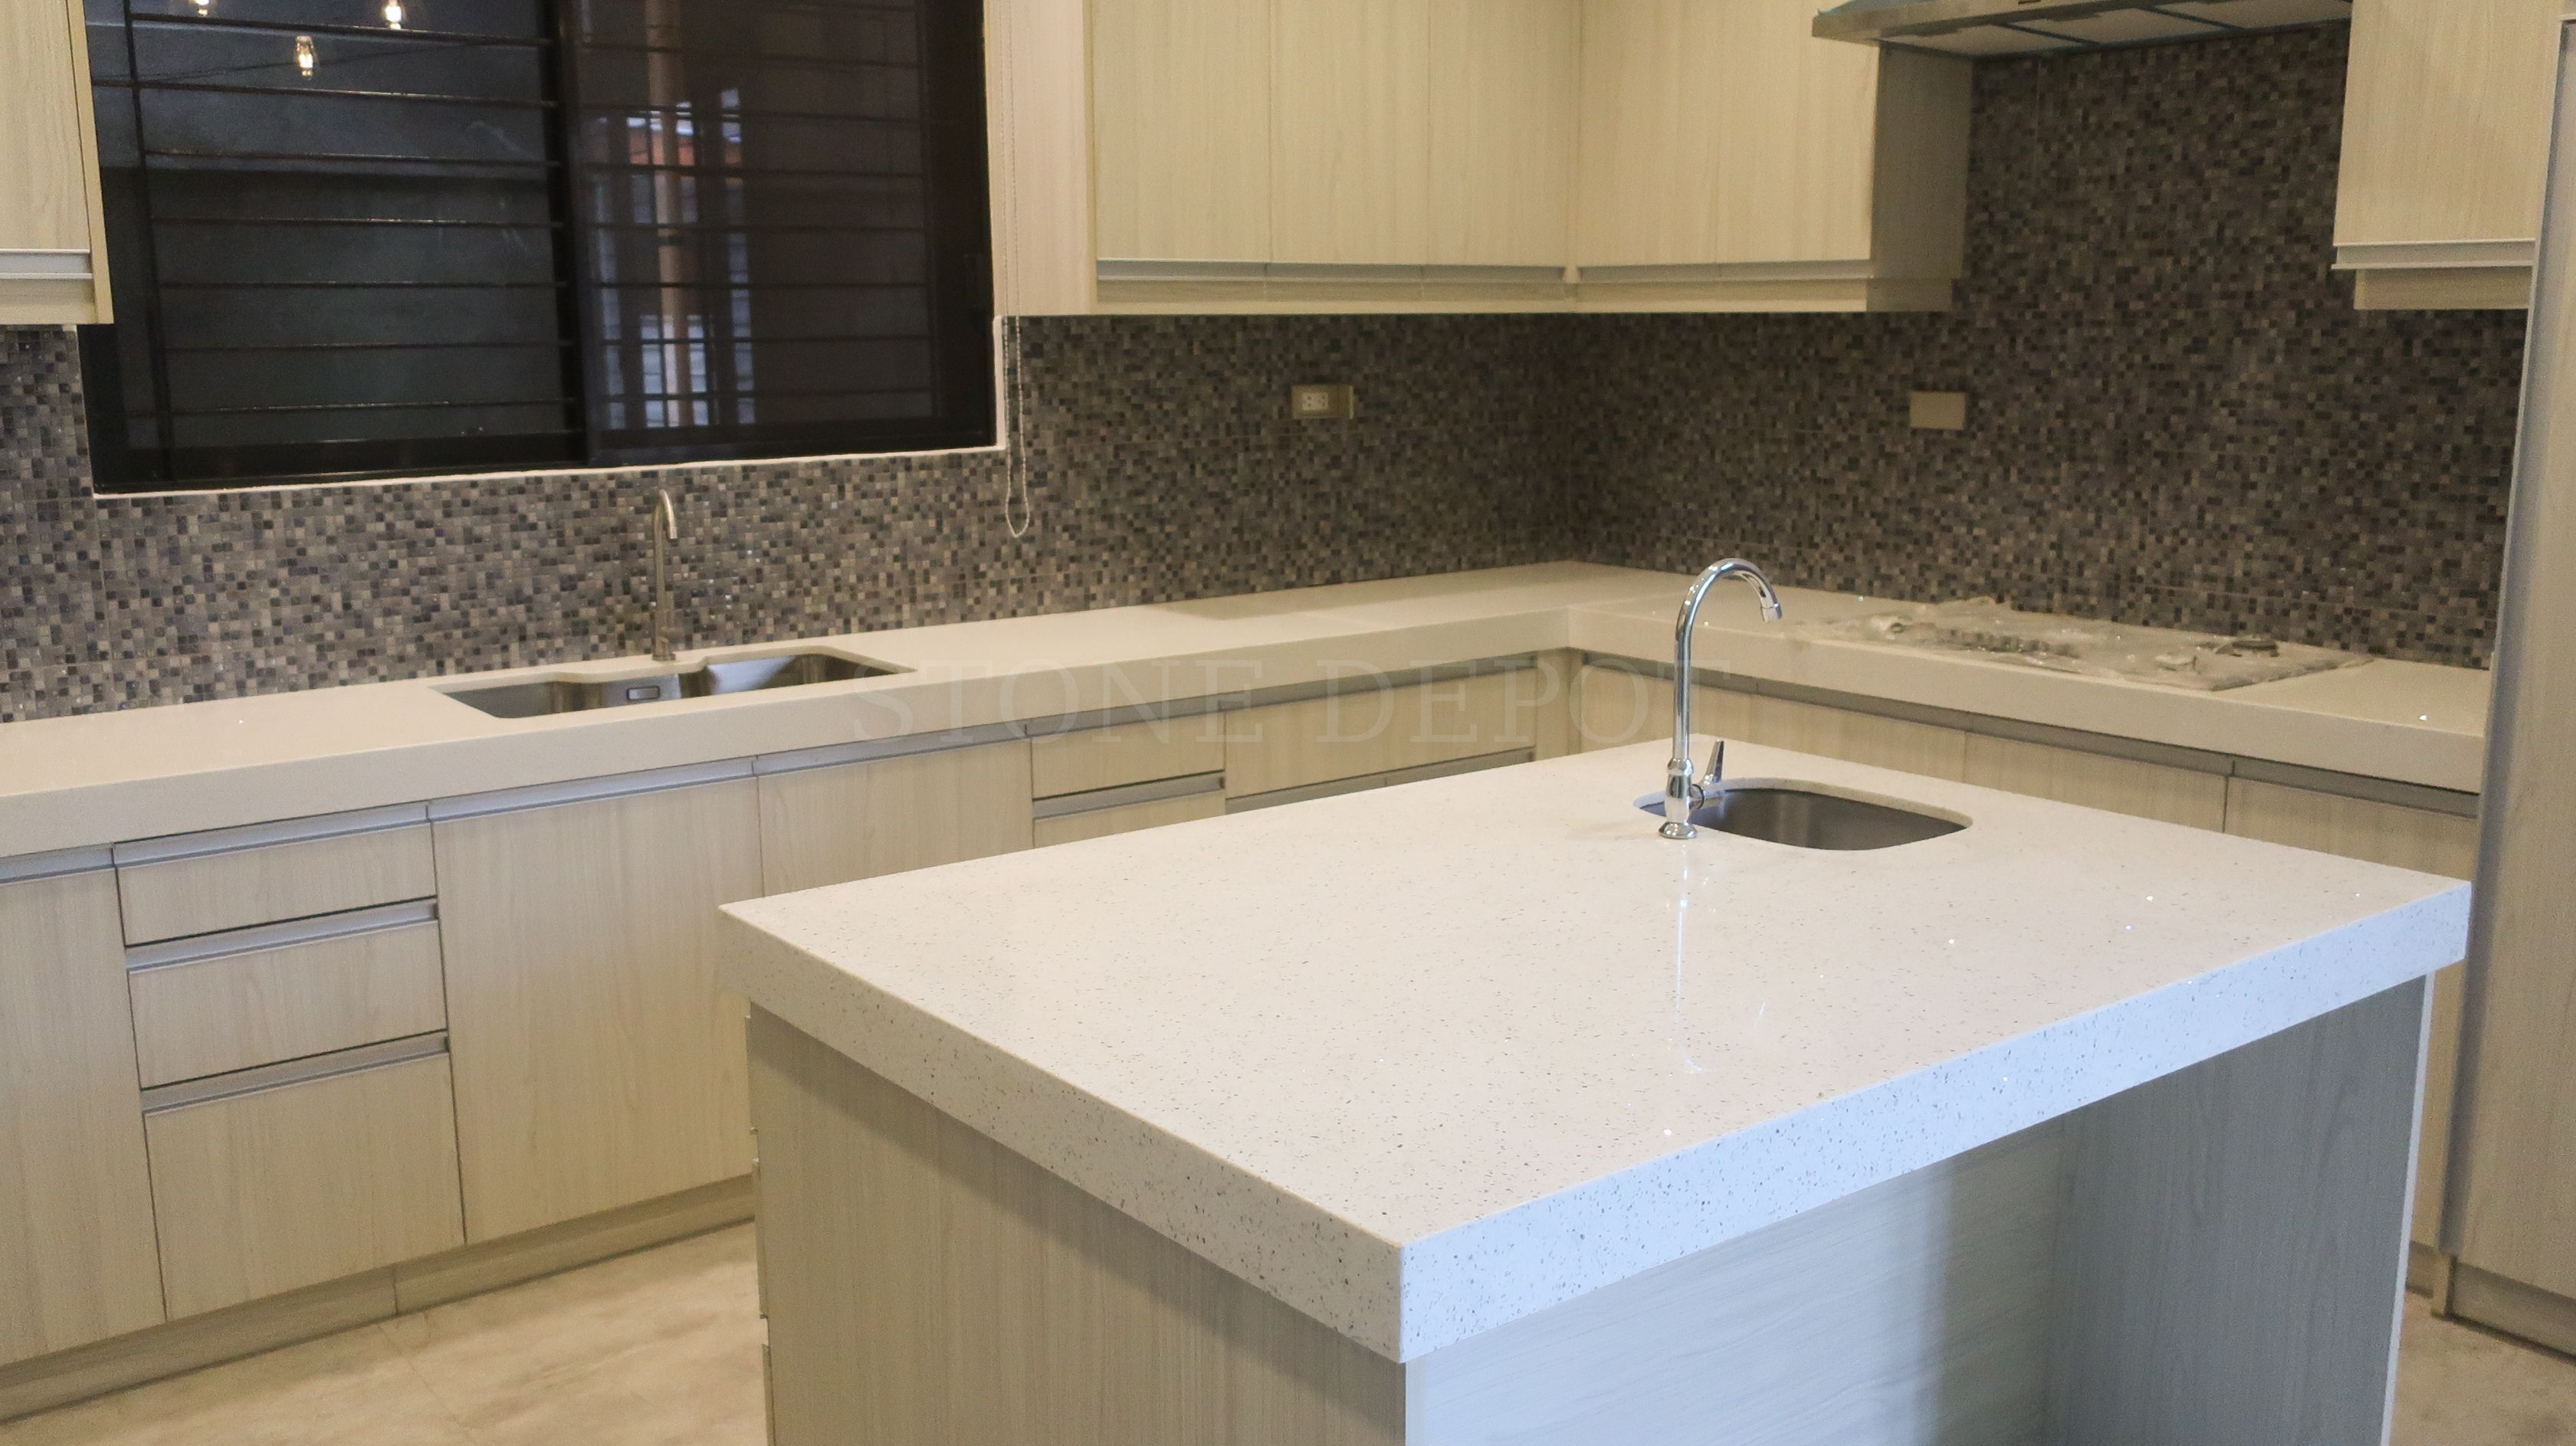 Are You Looking For An Engineered Quartz For Your Kitchen Countertop Drop Us A Message To Get Y Countertops Kitchen Countertops Marble Granite Countertops